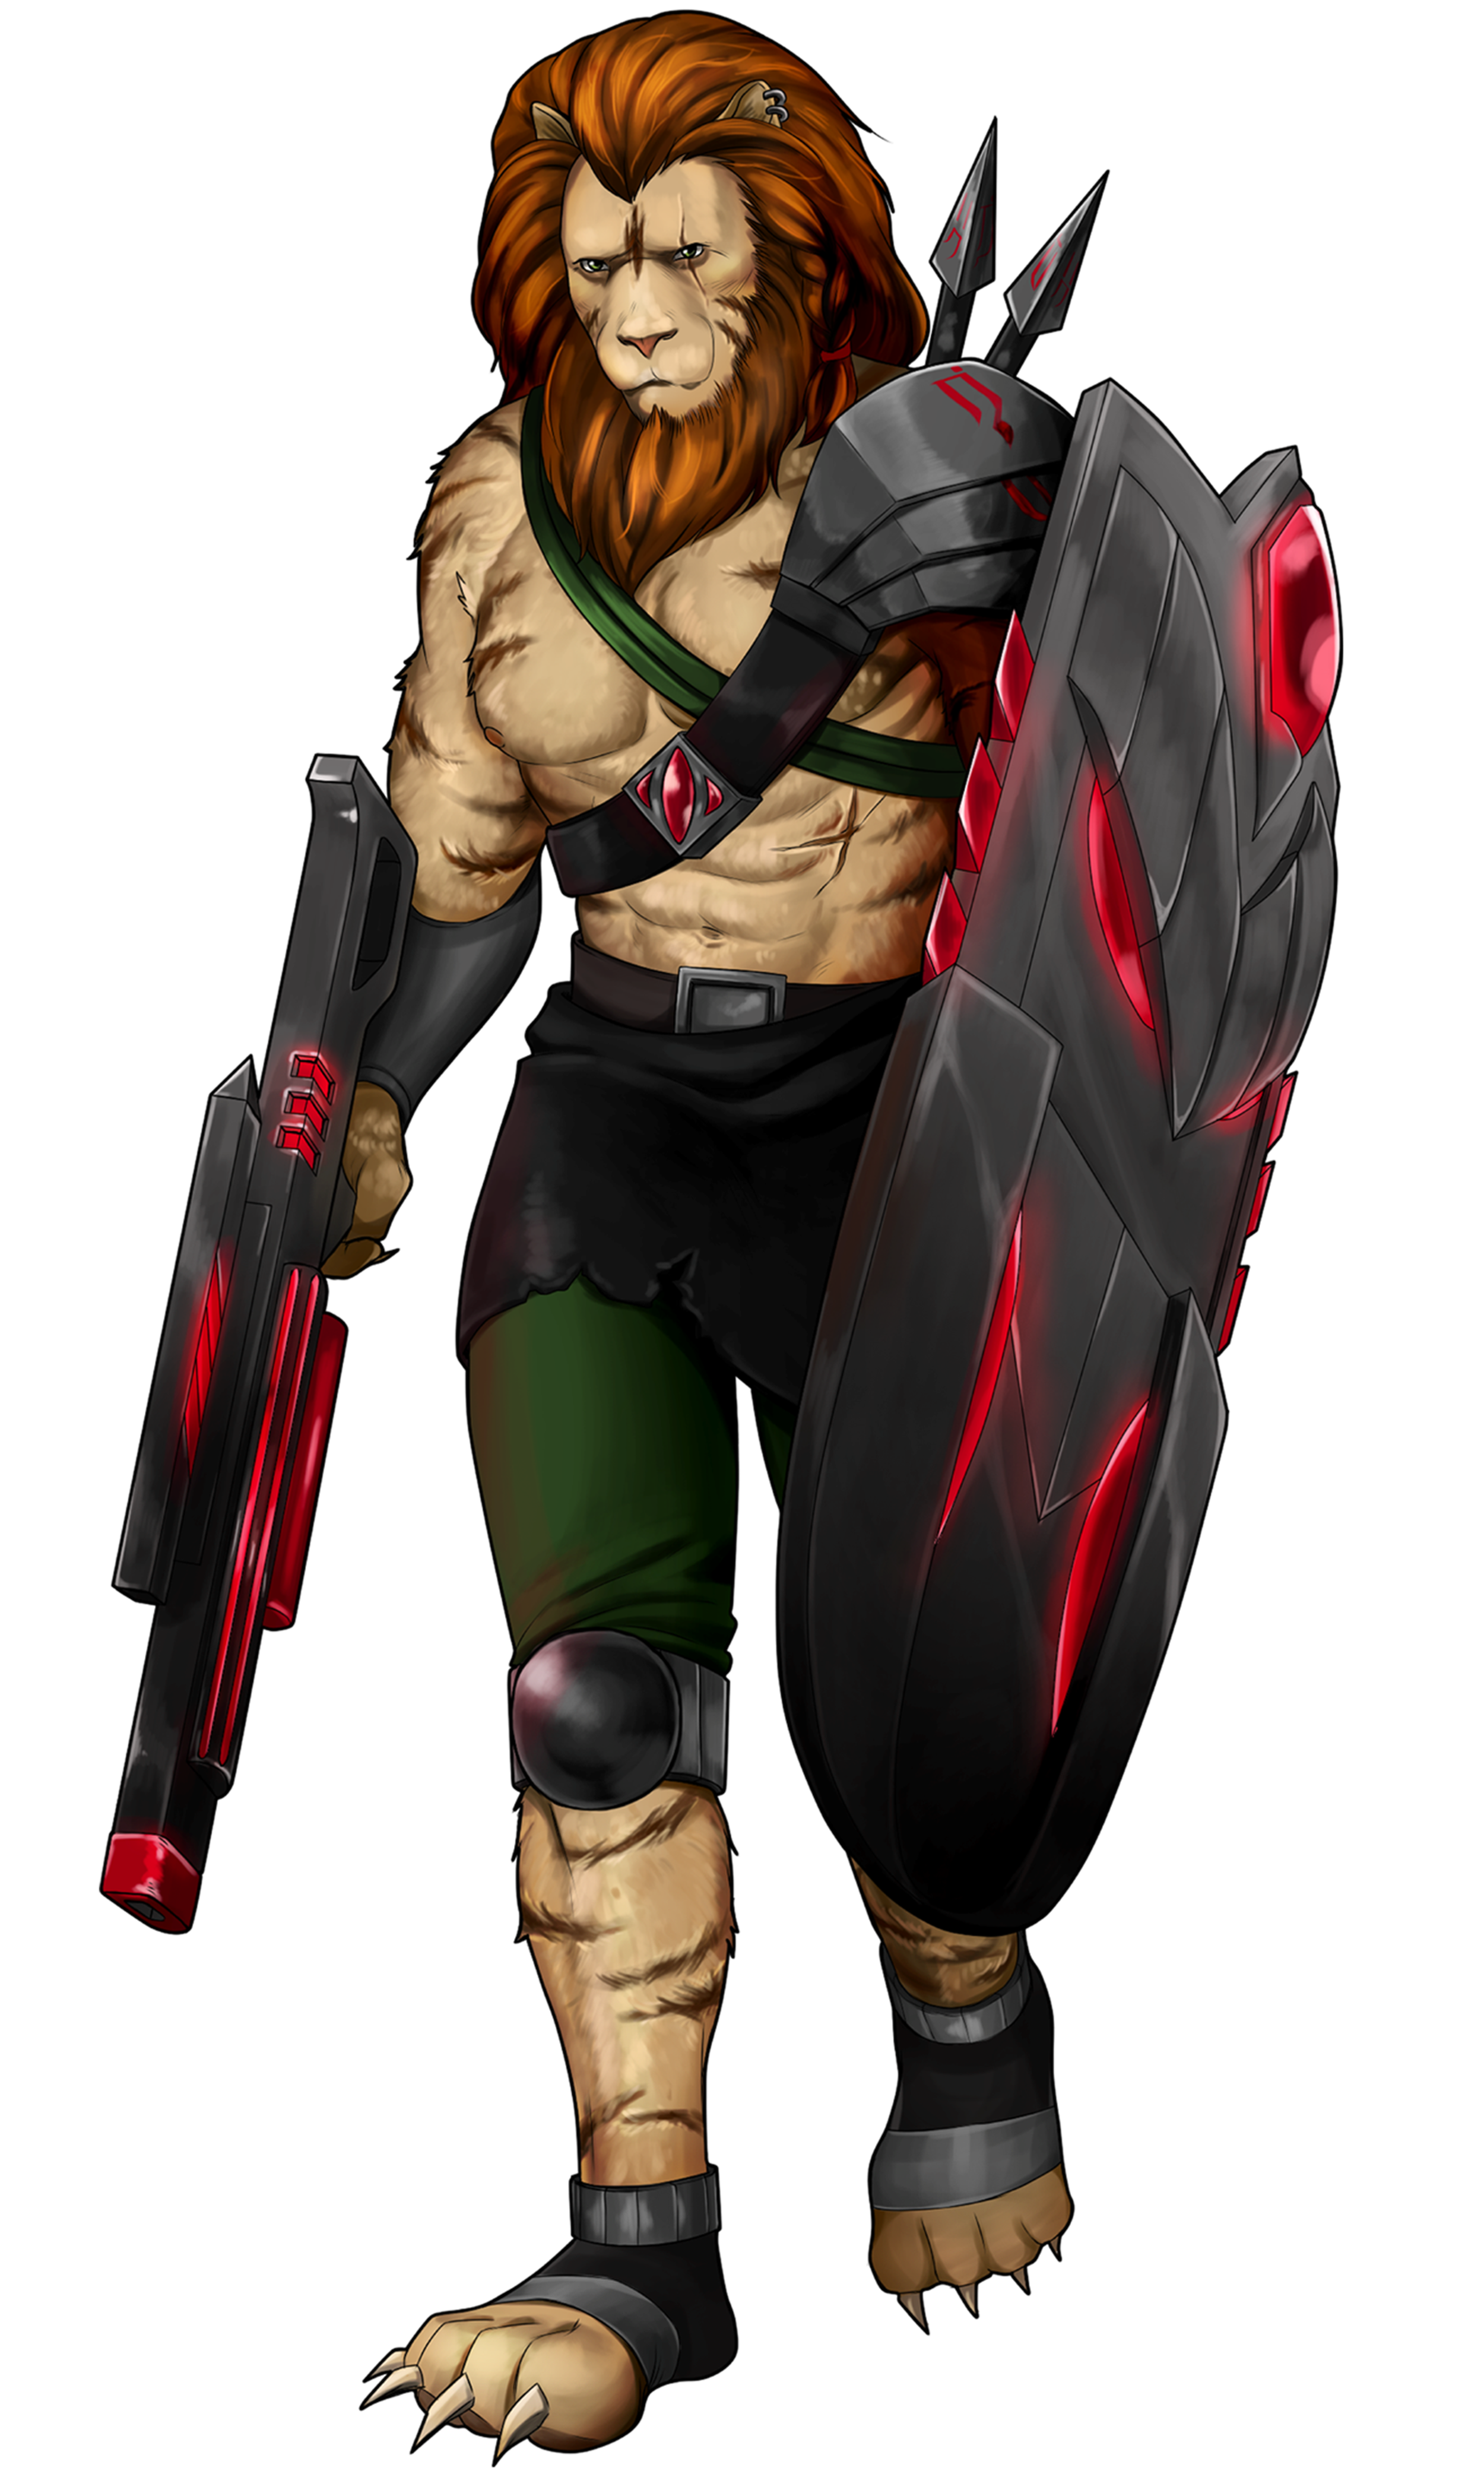 Brizgar - Leogin Defender   The noble and proud leader. Brizgar rushes into battle with determination to win.   Playstyle:  Team support tank, capable of hitting multiple enemies with shield toss and machine gun.